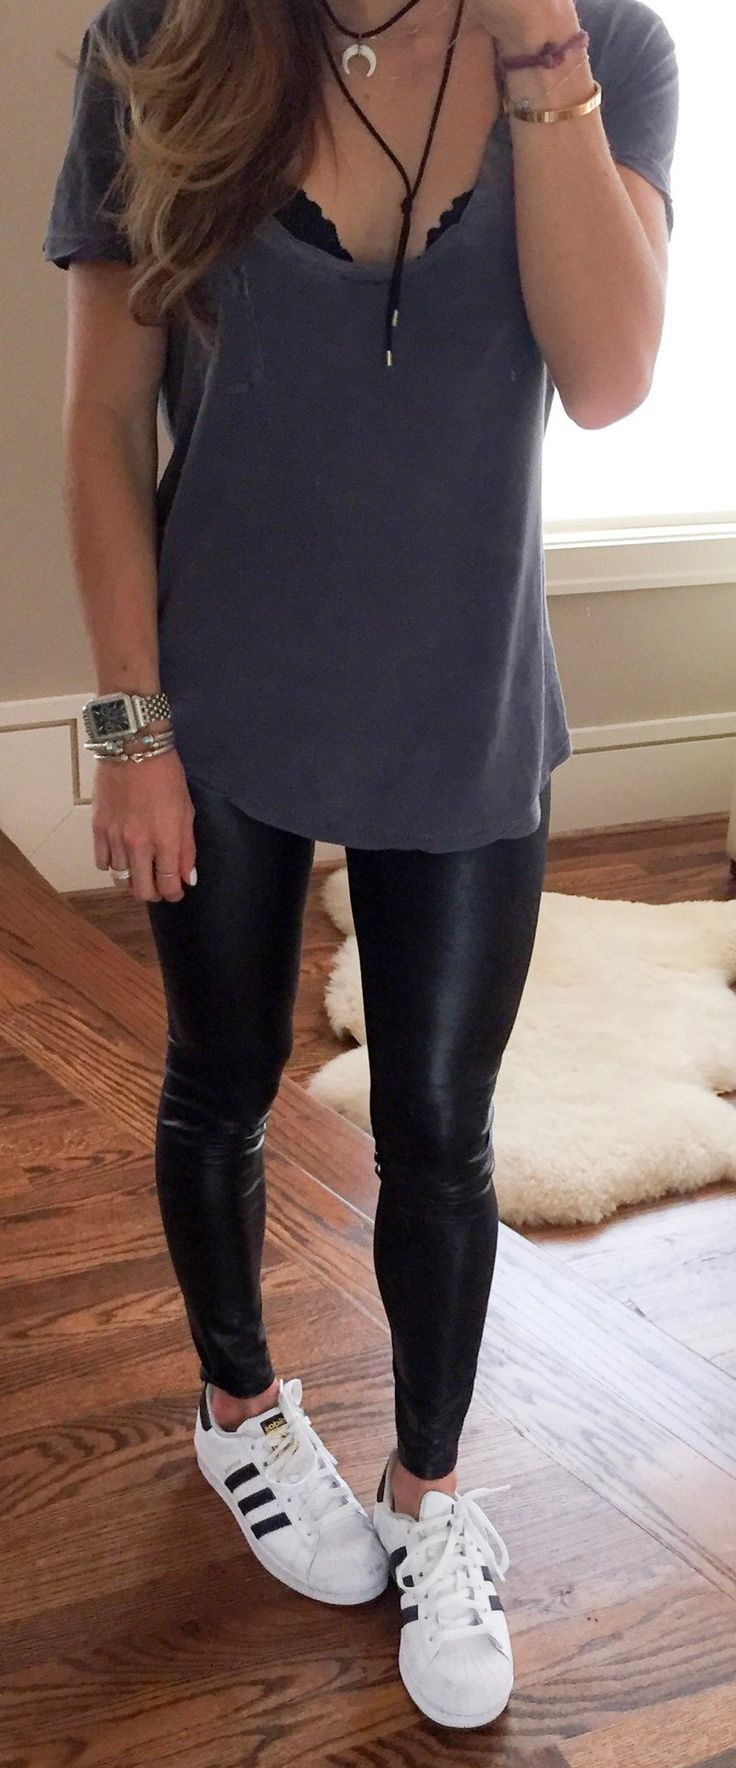 25+ best ideas about Black leggings outfit on Pinterest | Girls black leggings Black leggings ...